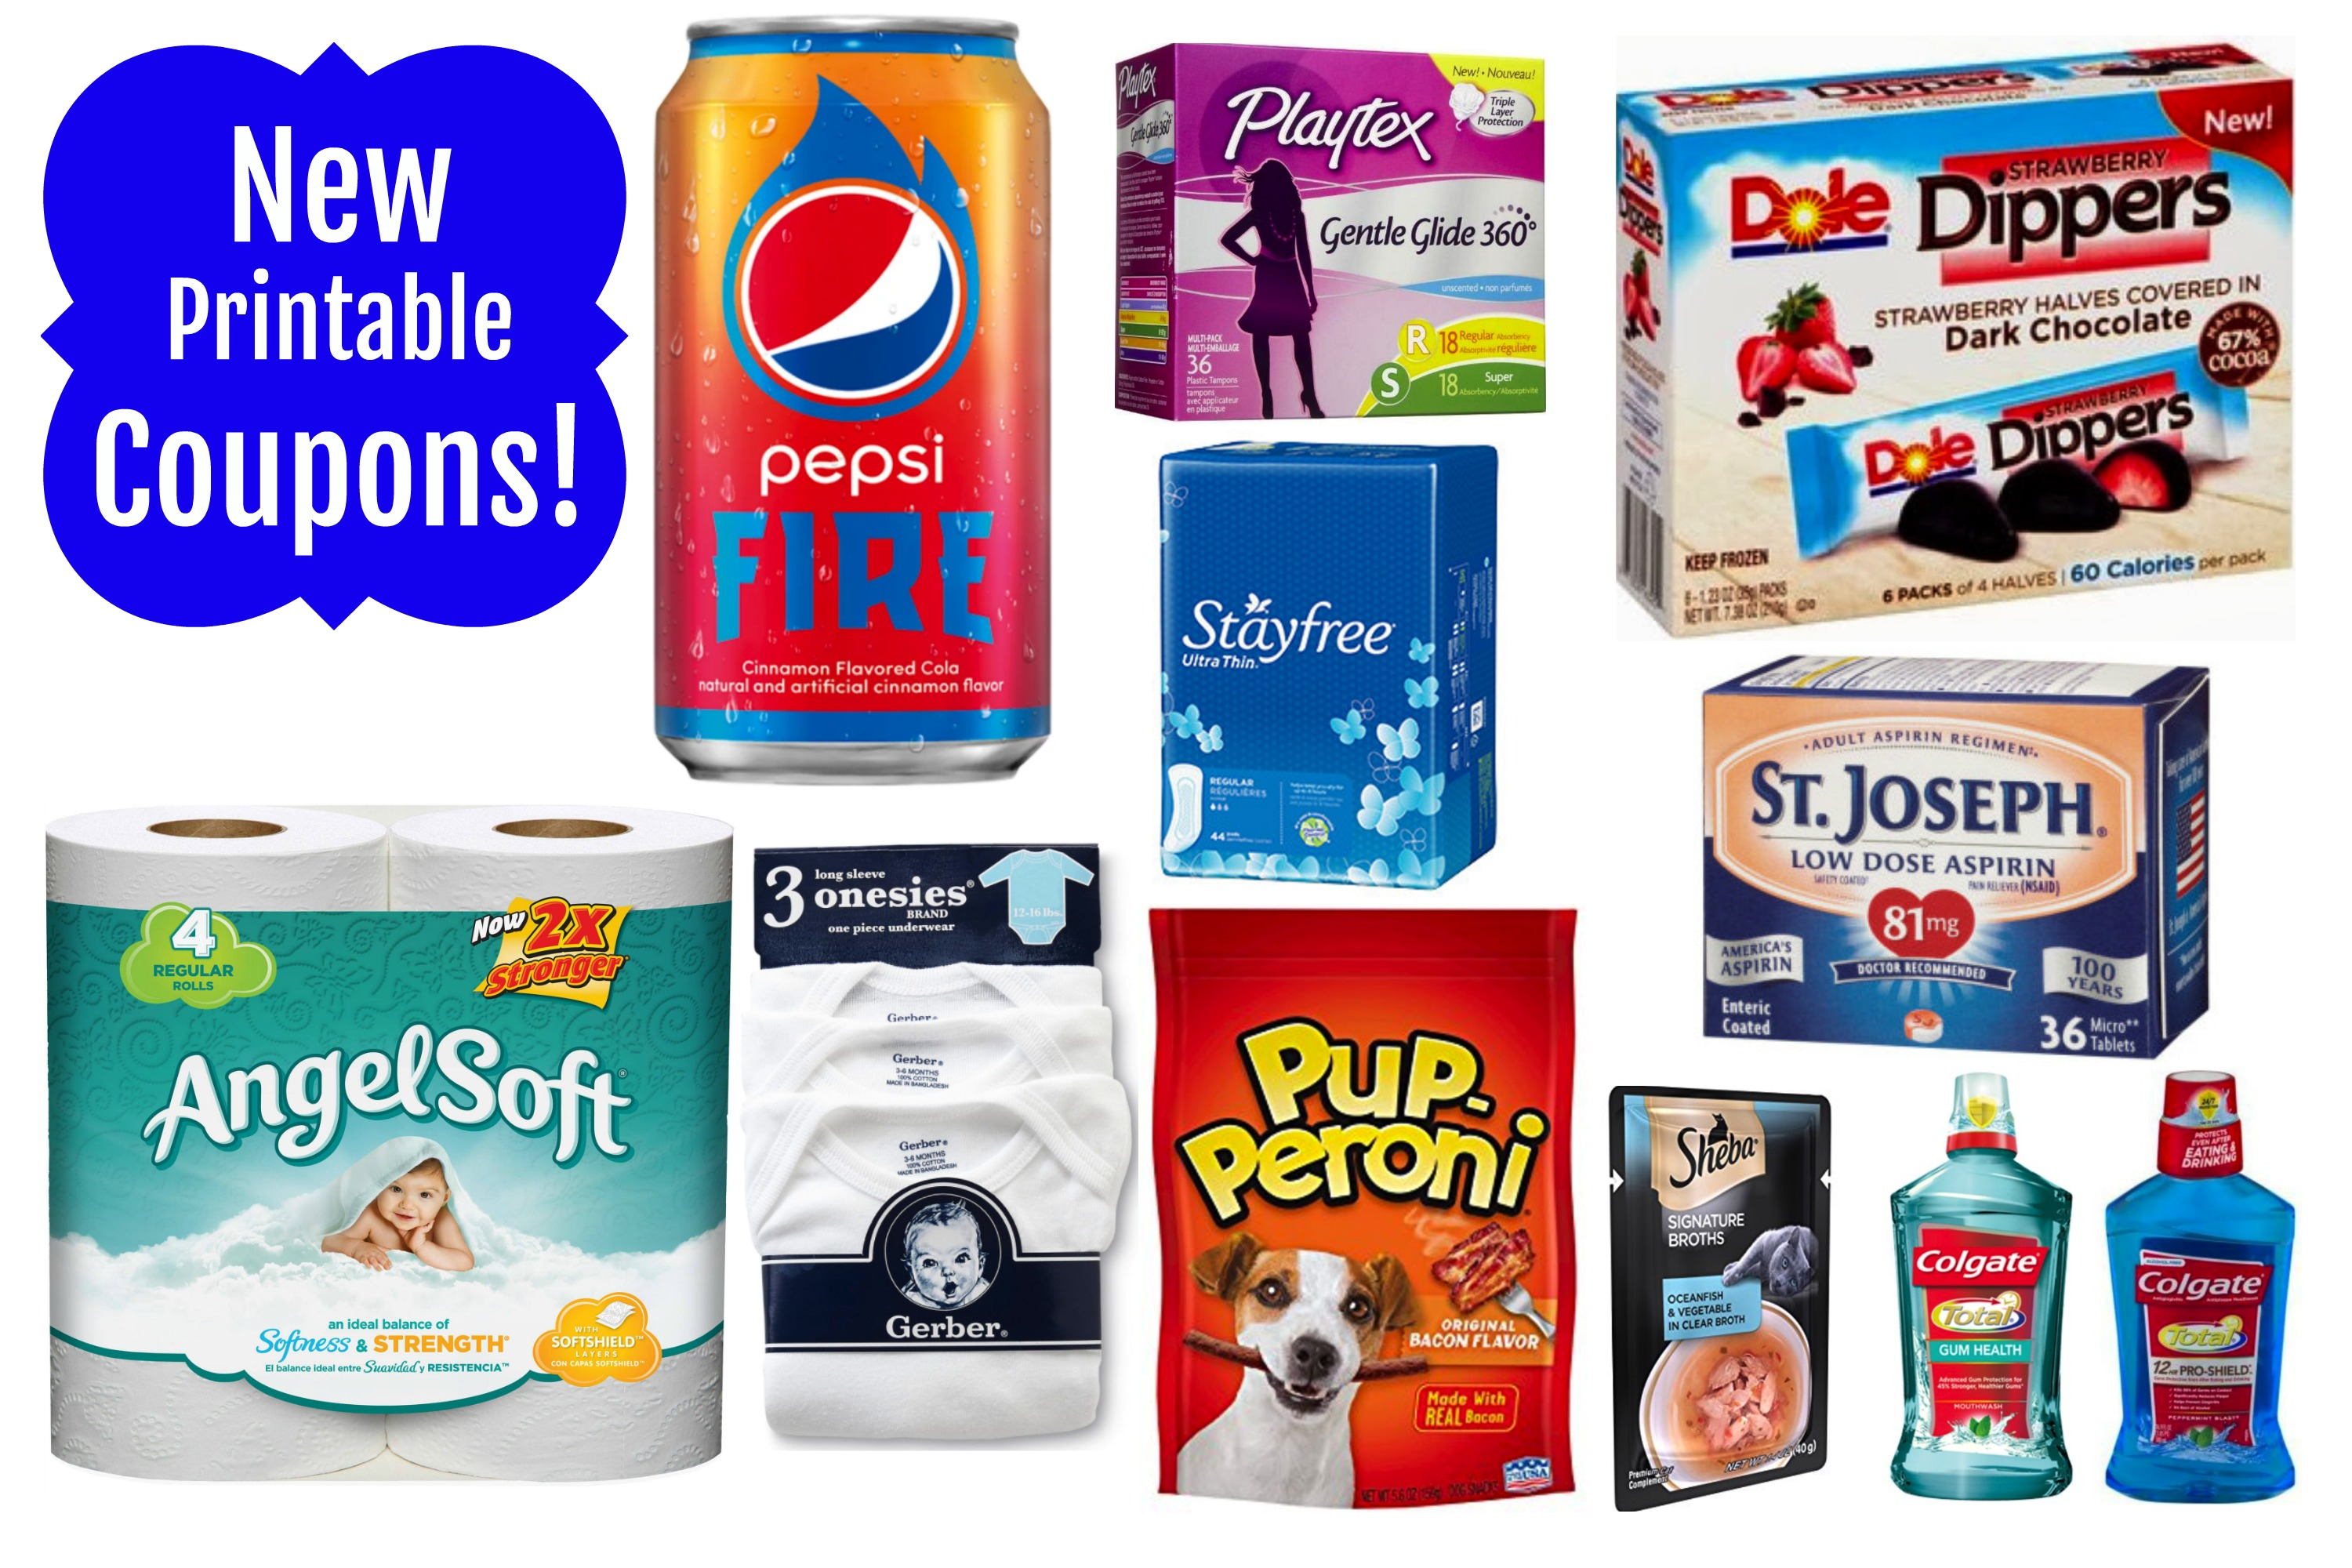 New Printable Coupons Angel Soft Stayfree Colgate Dole Pepsi